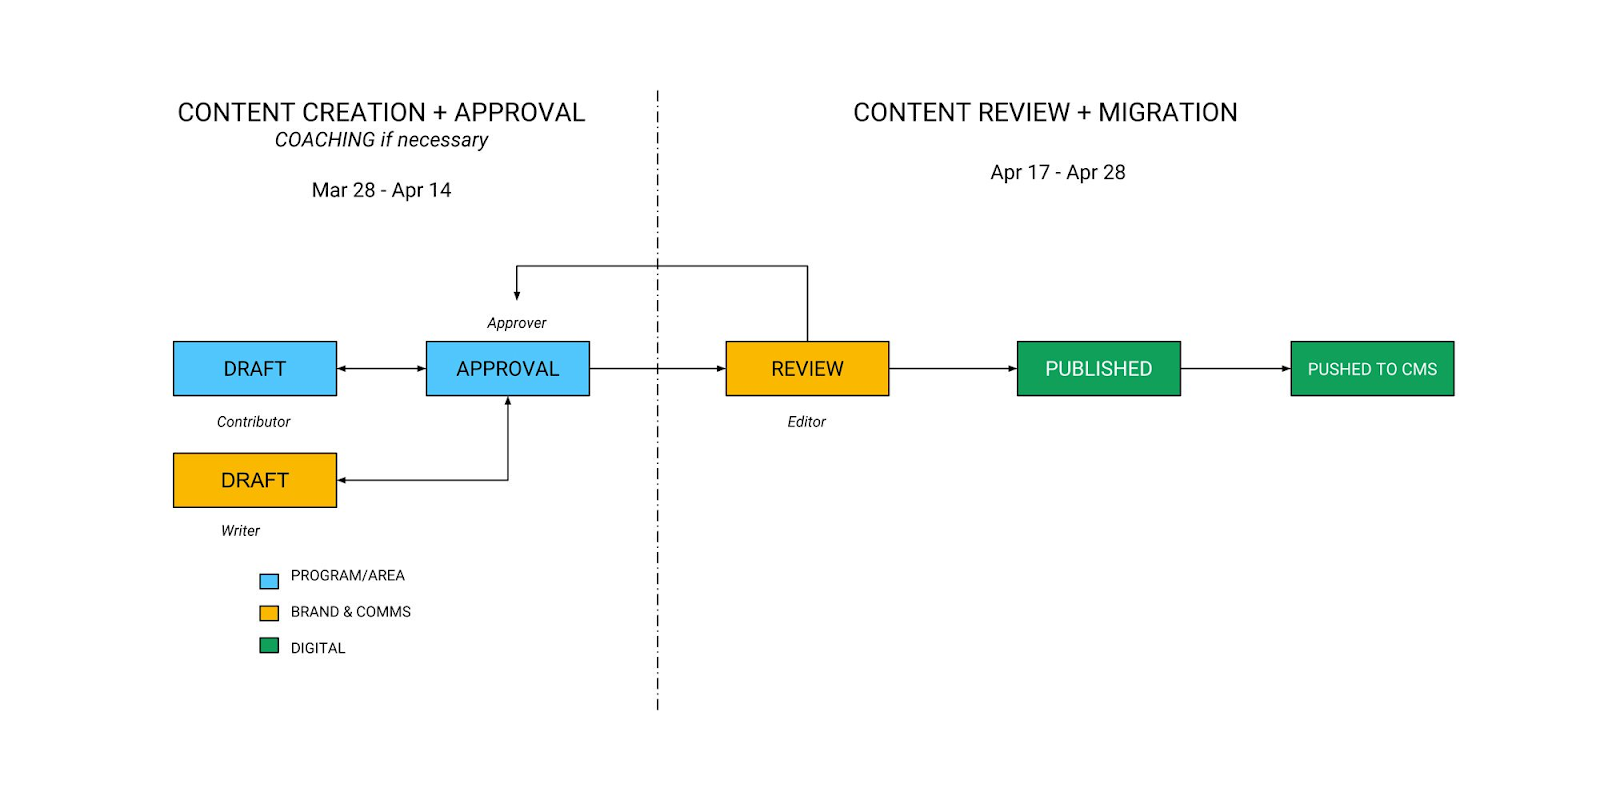 Image shows adjusted workflow